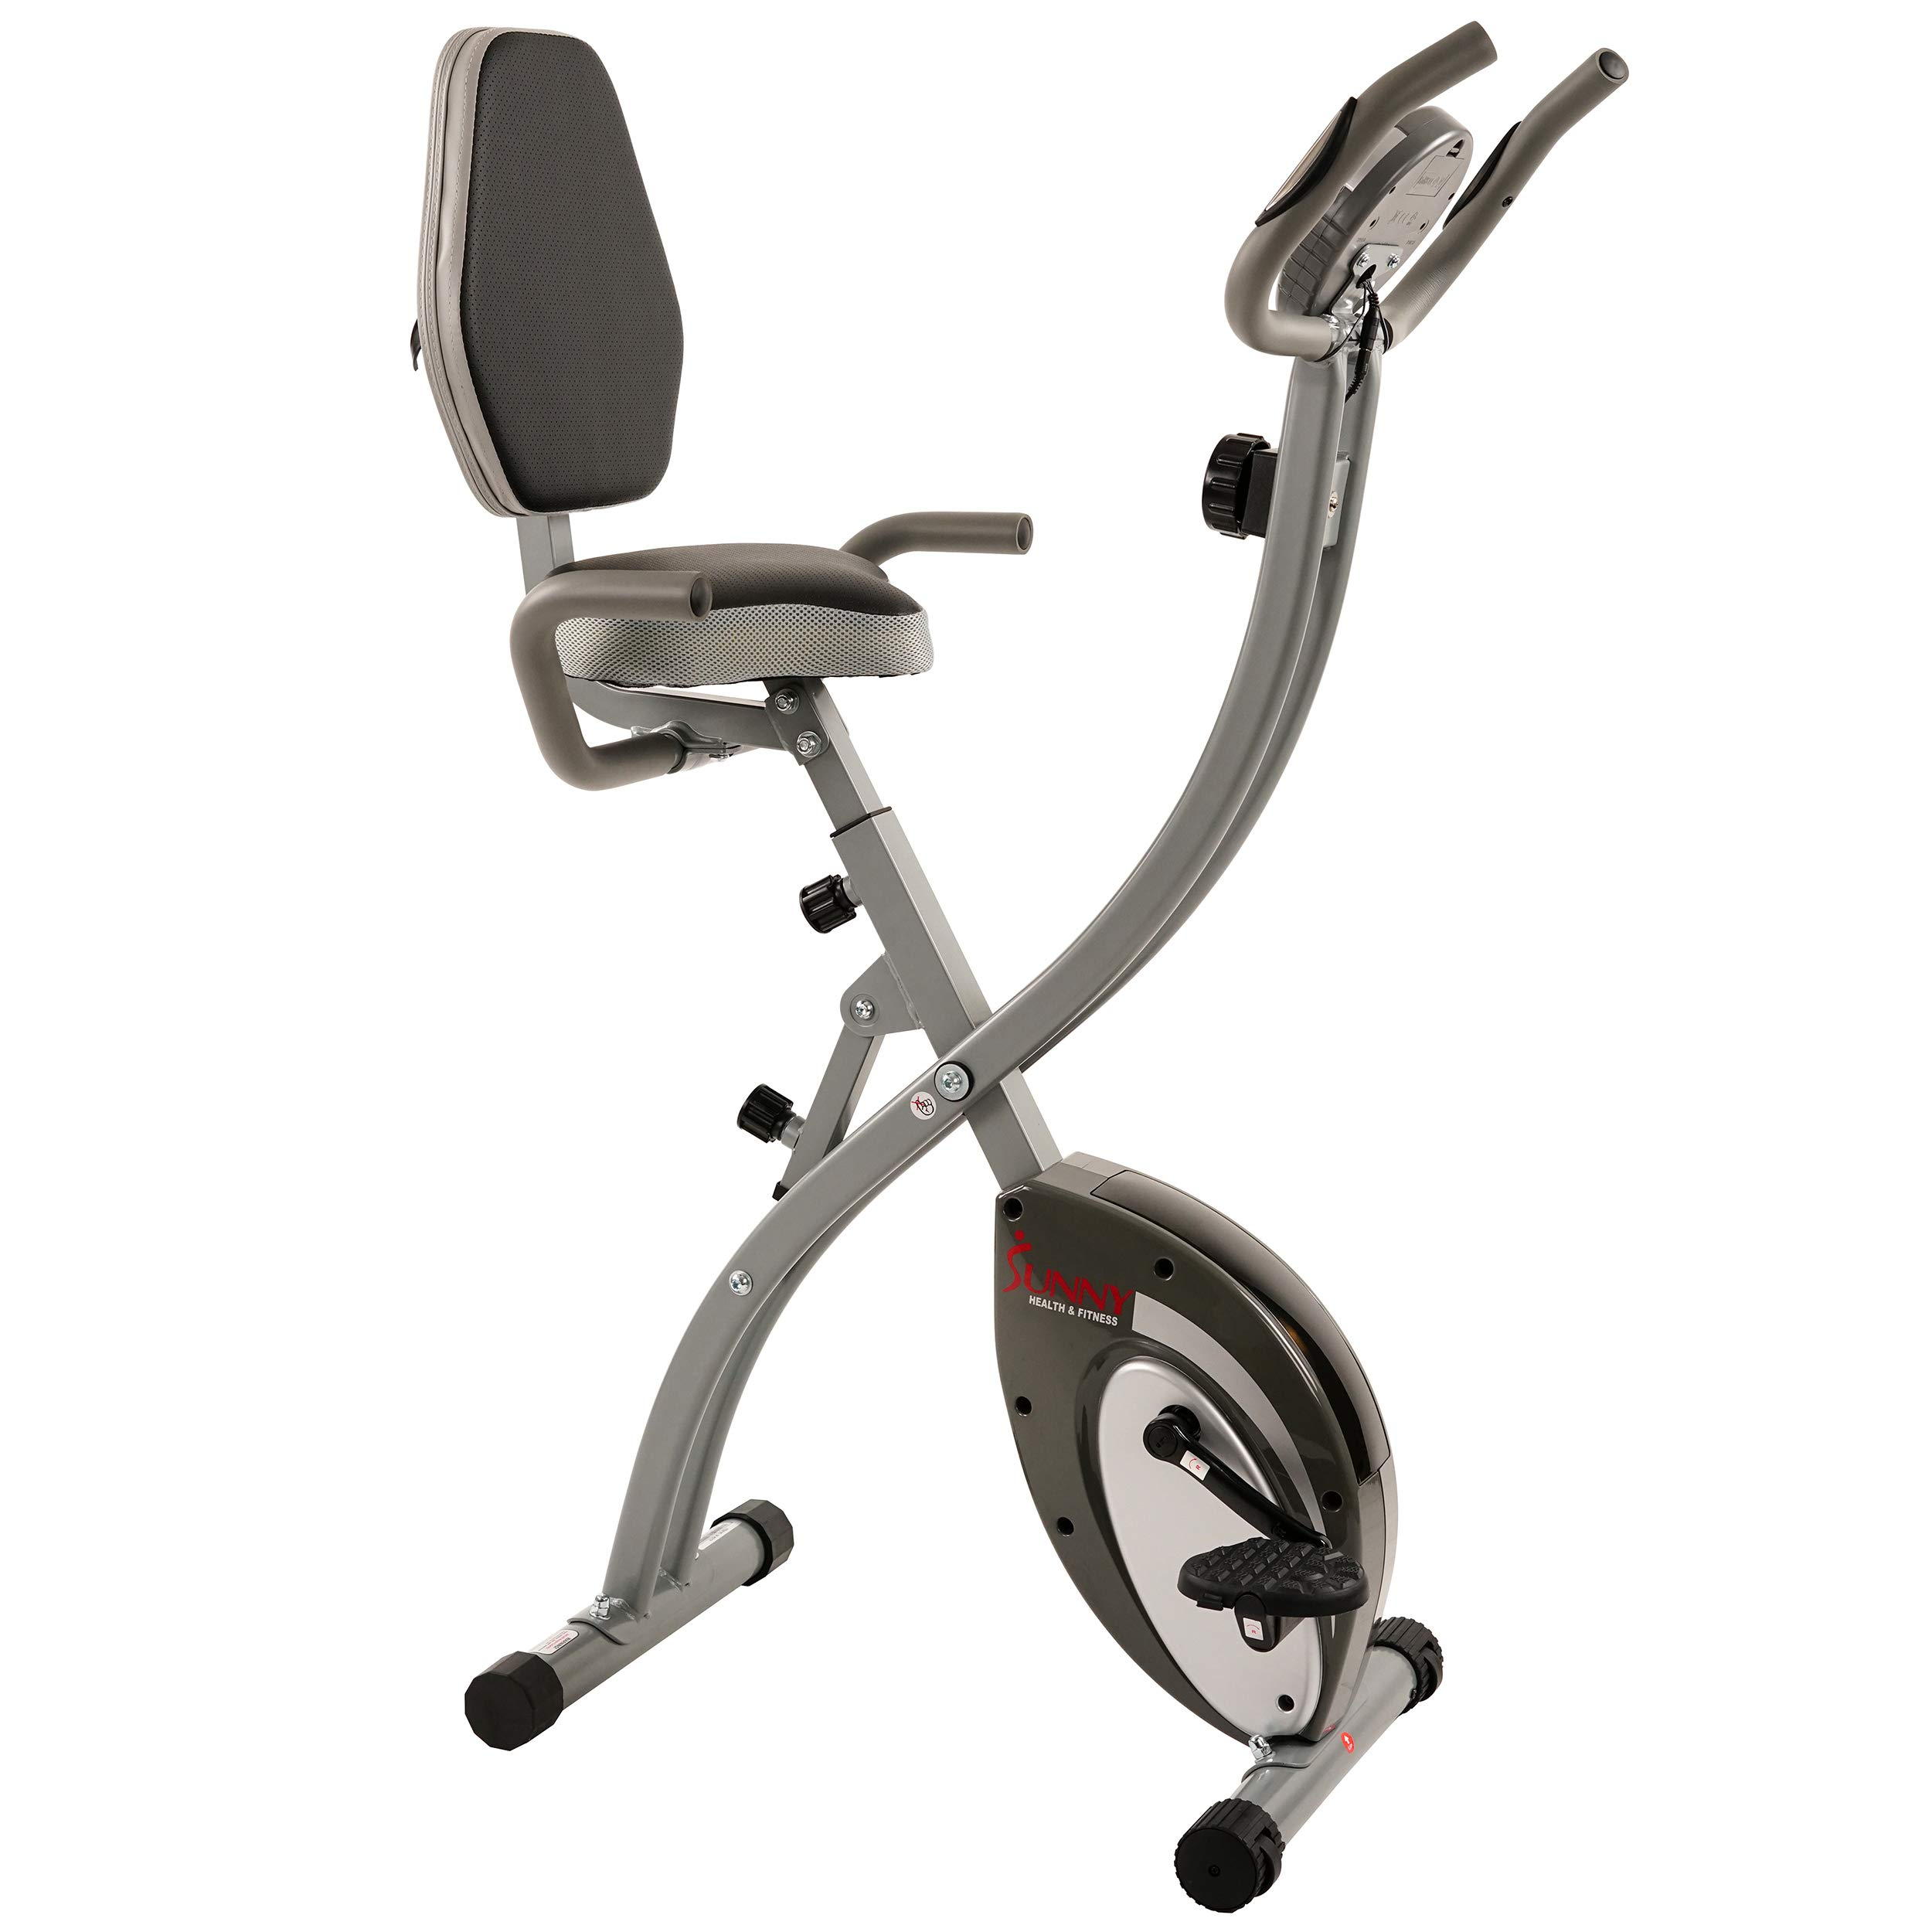 Sunny Health & Fitness Comfort XL Folding Semi-Recumbent Bike - SF-B2721 by Sunny Health & Fitness (Image #5)